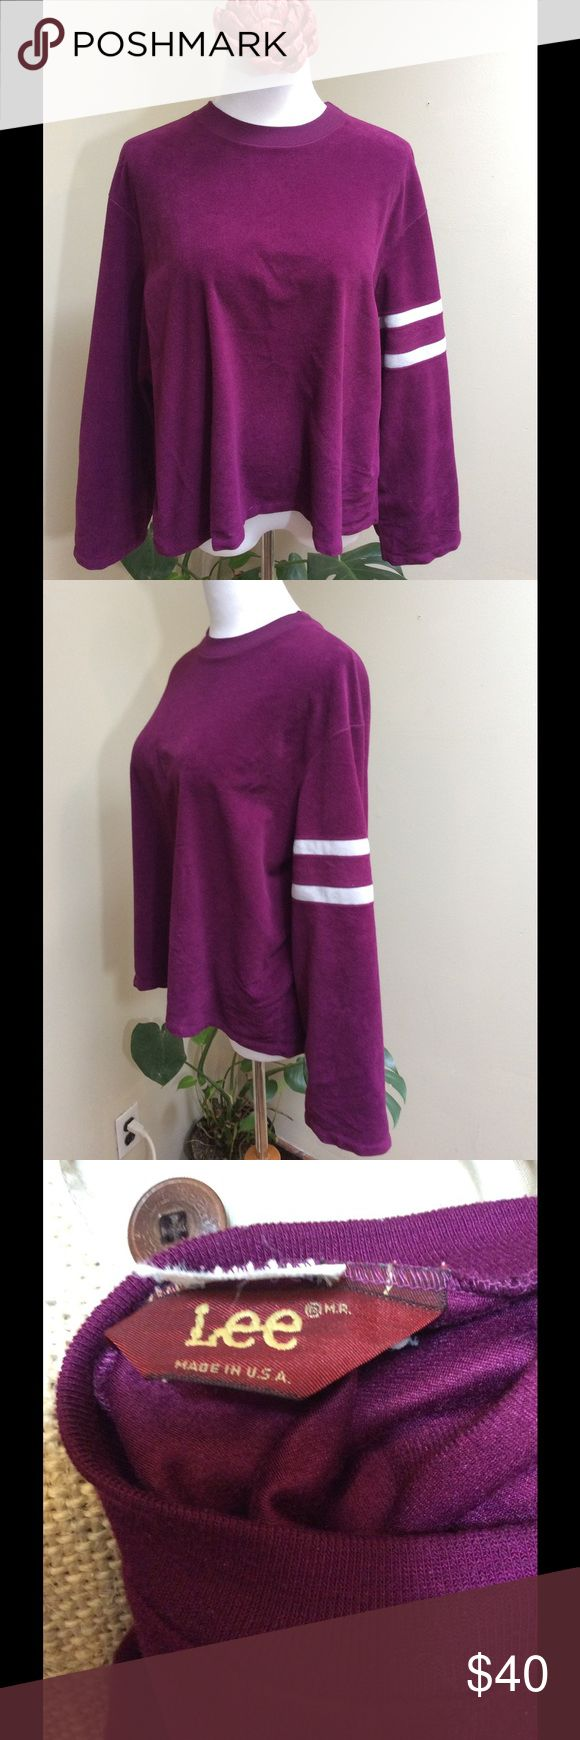 "70s 80s LEE VELOUR Maroon Purple Sweatshirt Large Make this yours! Vintage Velour for Spring! Maroon / purple Lee Jeans Crew Neck Sweatshirt w/ Stripes on one sleeve. Shorter cropped look.Made in the USA.   The Measurements: Women's loose Large or tighter XL Chest: 48"" Length: 22"" Sleeves: 21"" Lee Tops Sweatshirts & Hoodies"